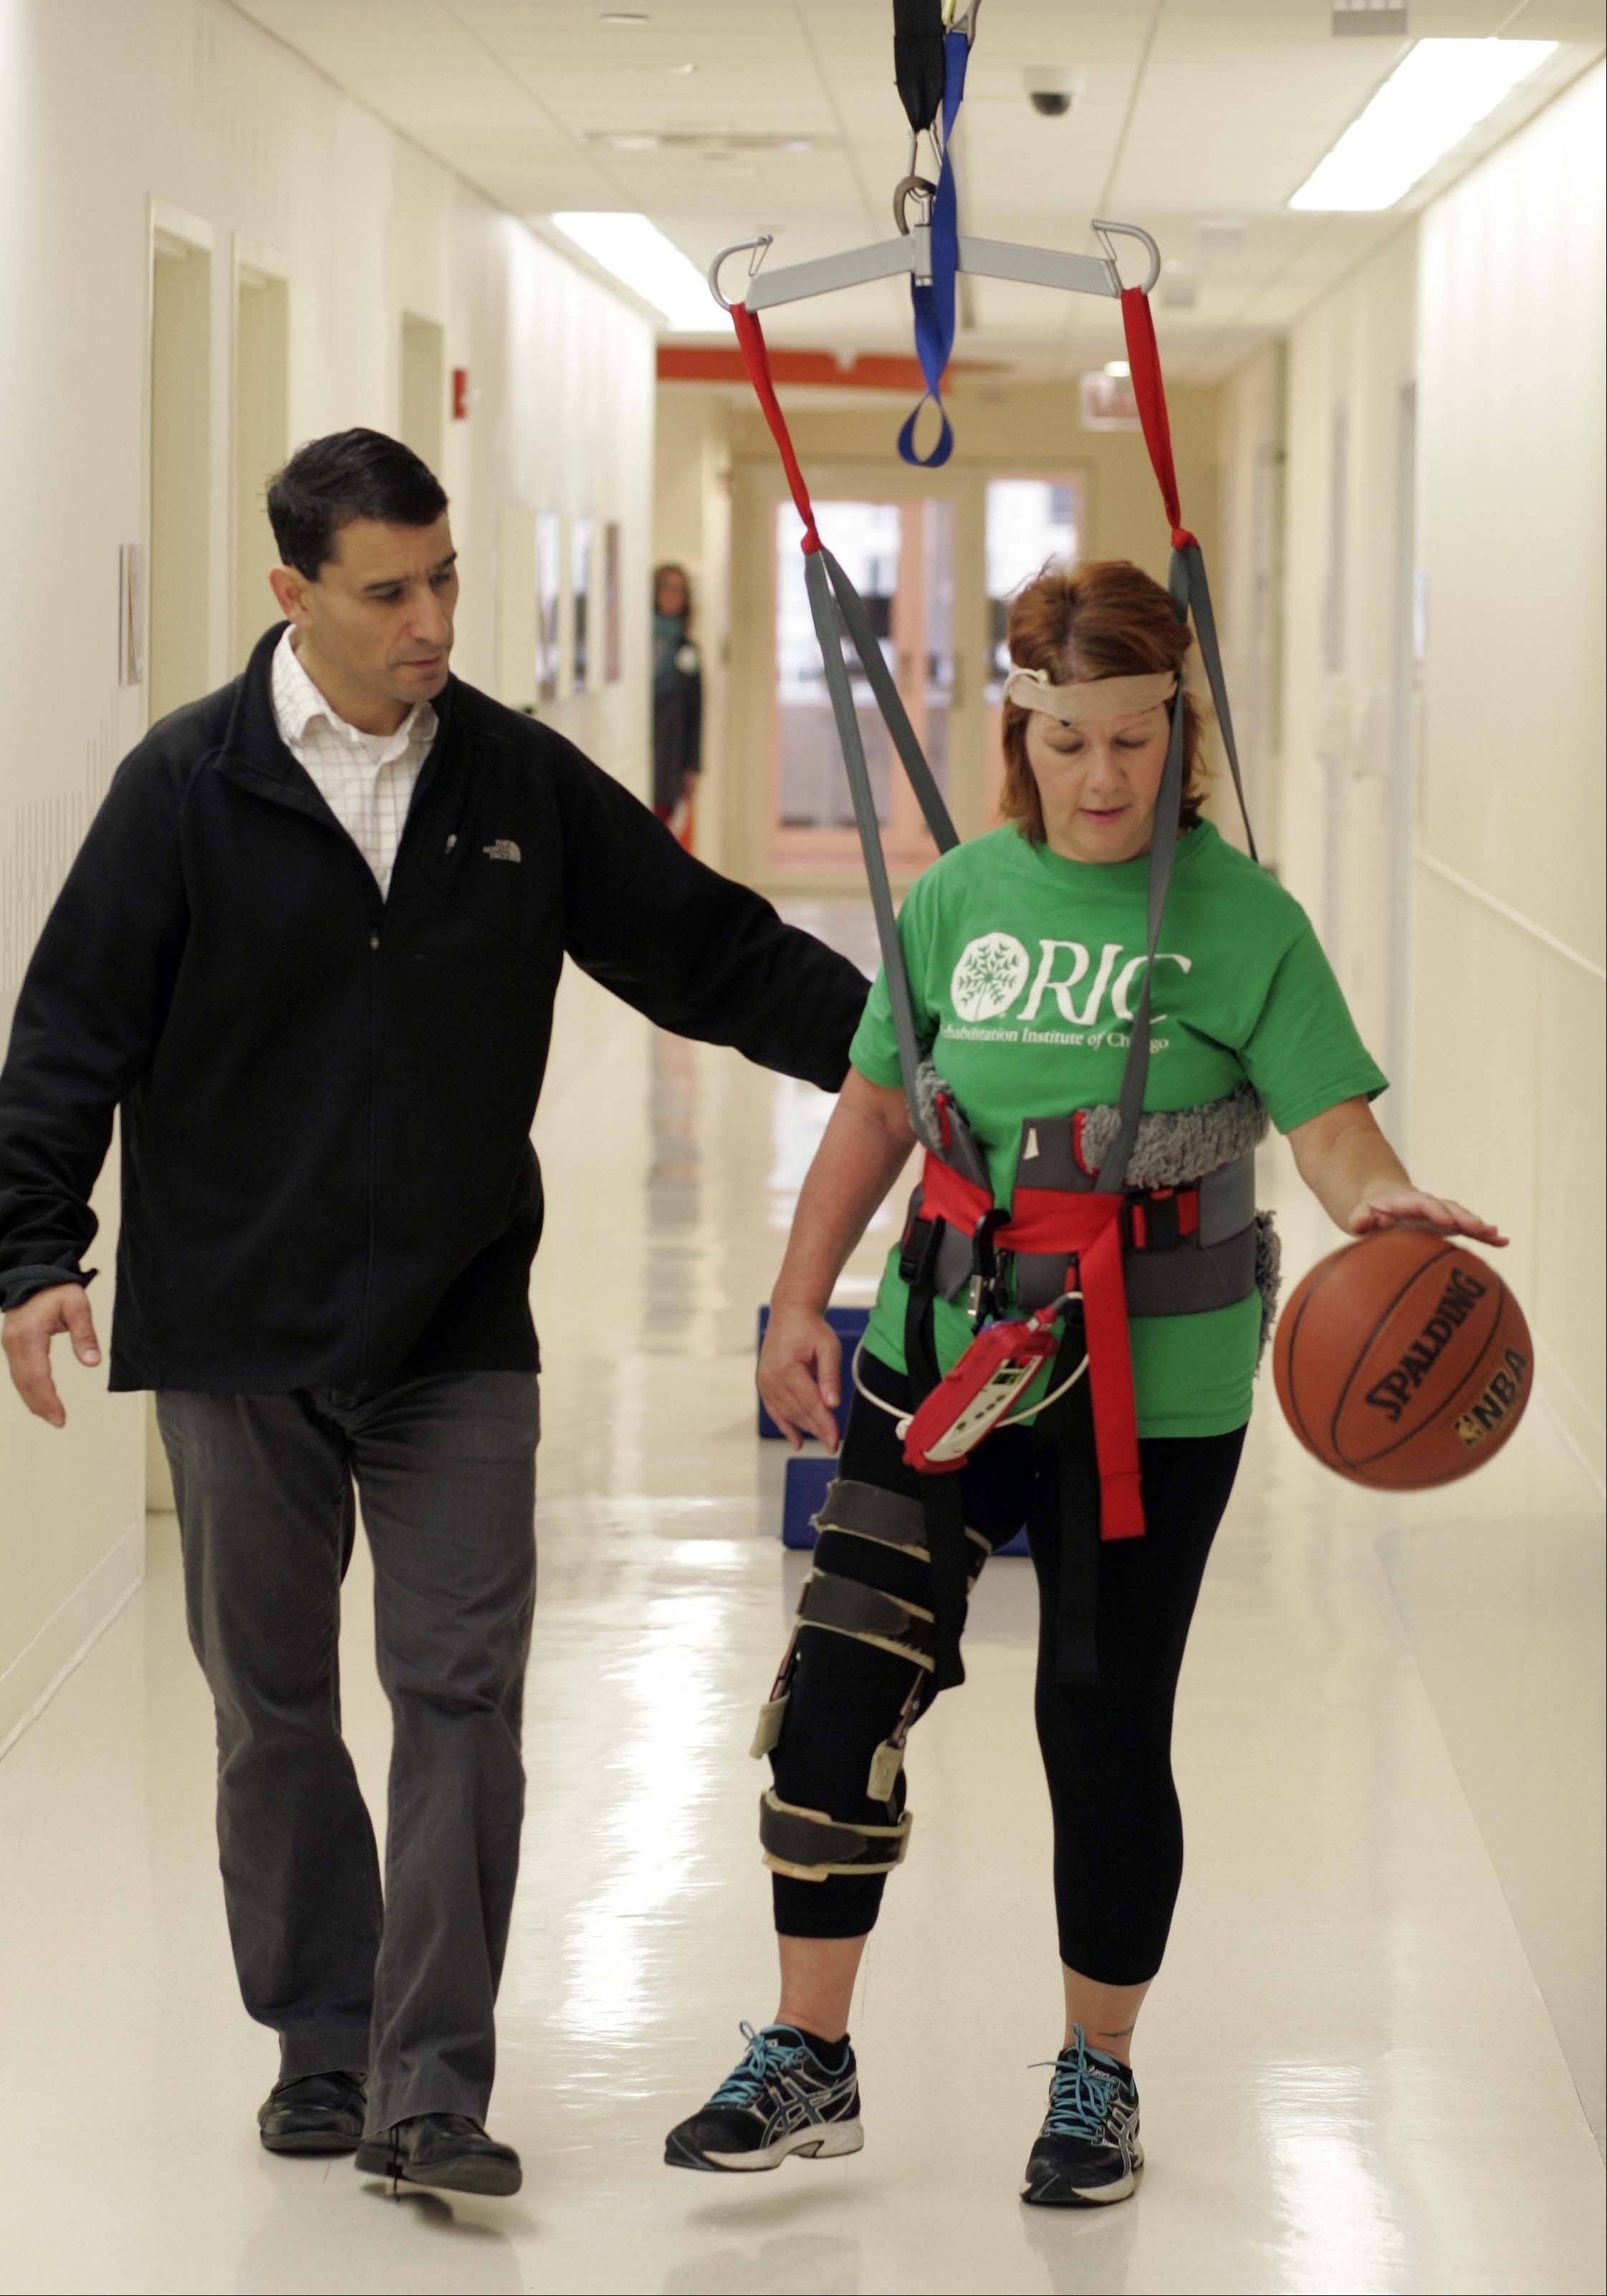 Kathy Pacholski dribbles and walks quickly as she works with Research Scientist and Physical Therapist T. George Hornby at the Rehabilitation Institute of Chicago. The exercises are part of an experimental walking training regimen for stroke patients, completed by both Pacholski and U.S. Sen. Mark Kirk.